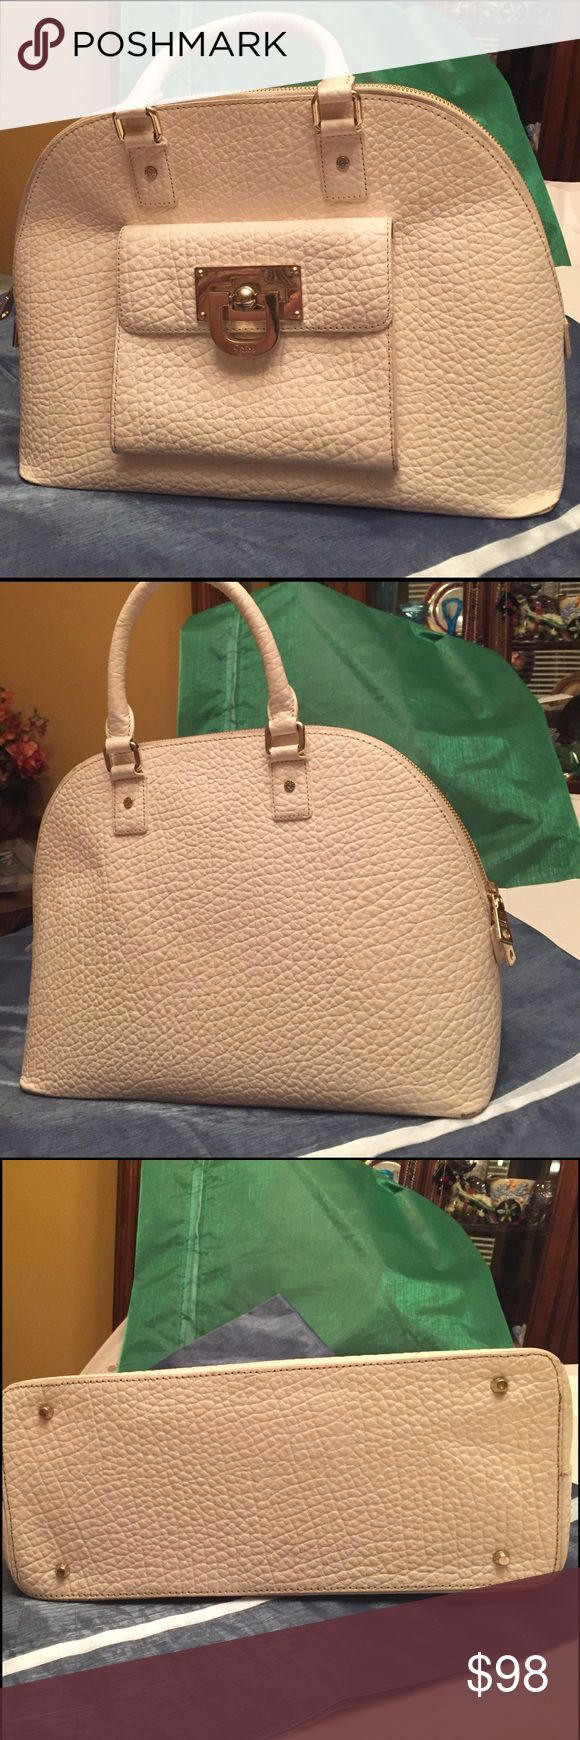 DKNY HANDBAG White pebbled leather bag with gold tone accessories. Minimal wear on handles and corners (see photos)  In overall excellent condition. DKNY Bags Totes